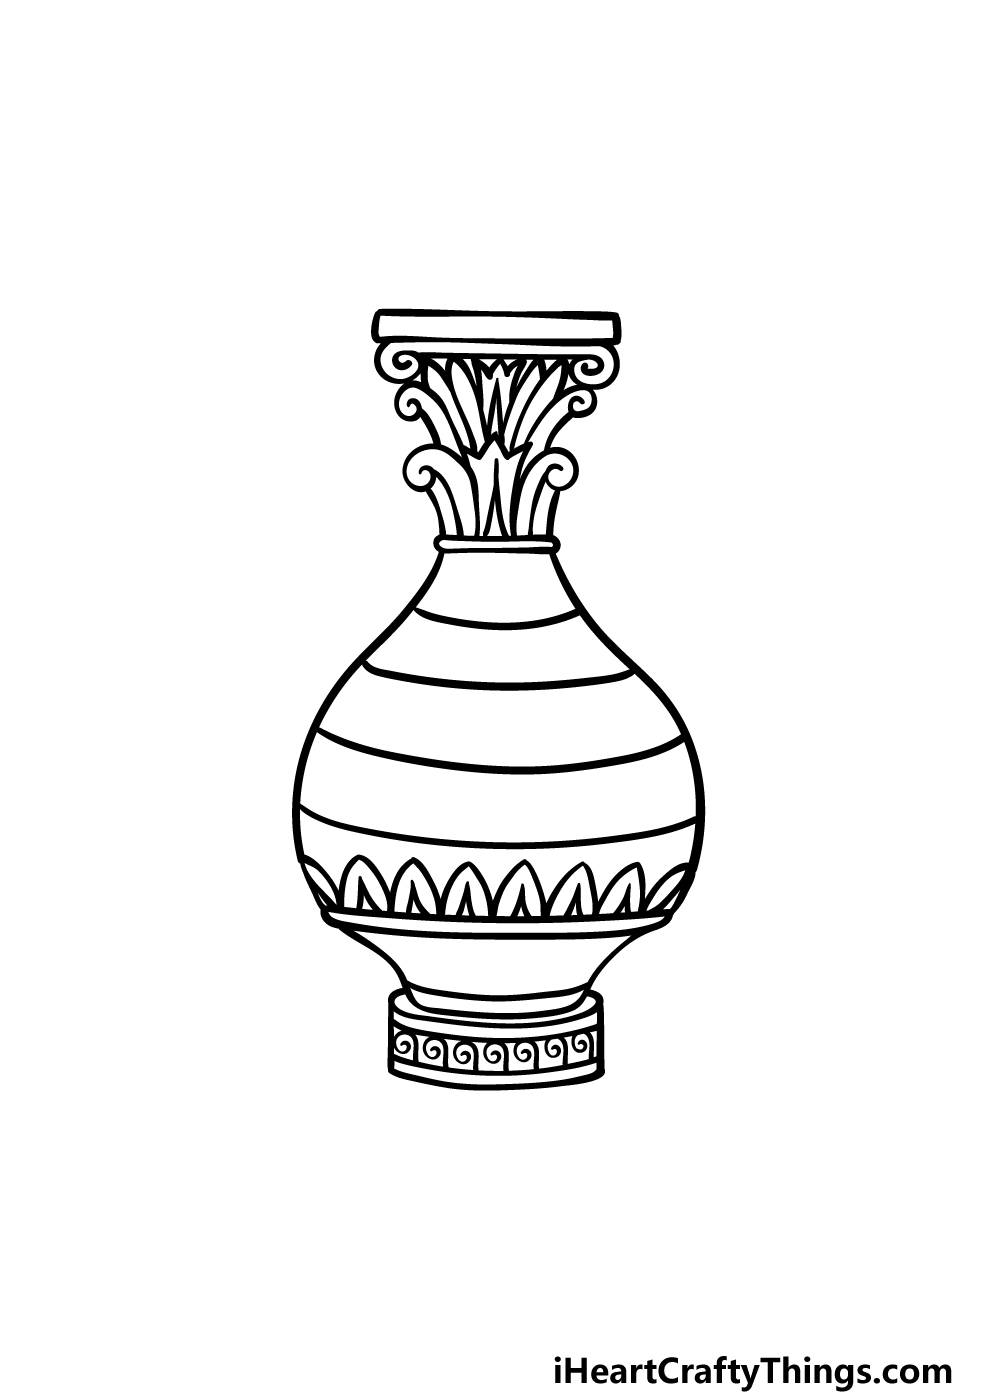 drawing a vase step 5